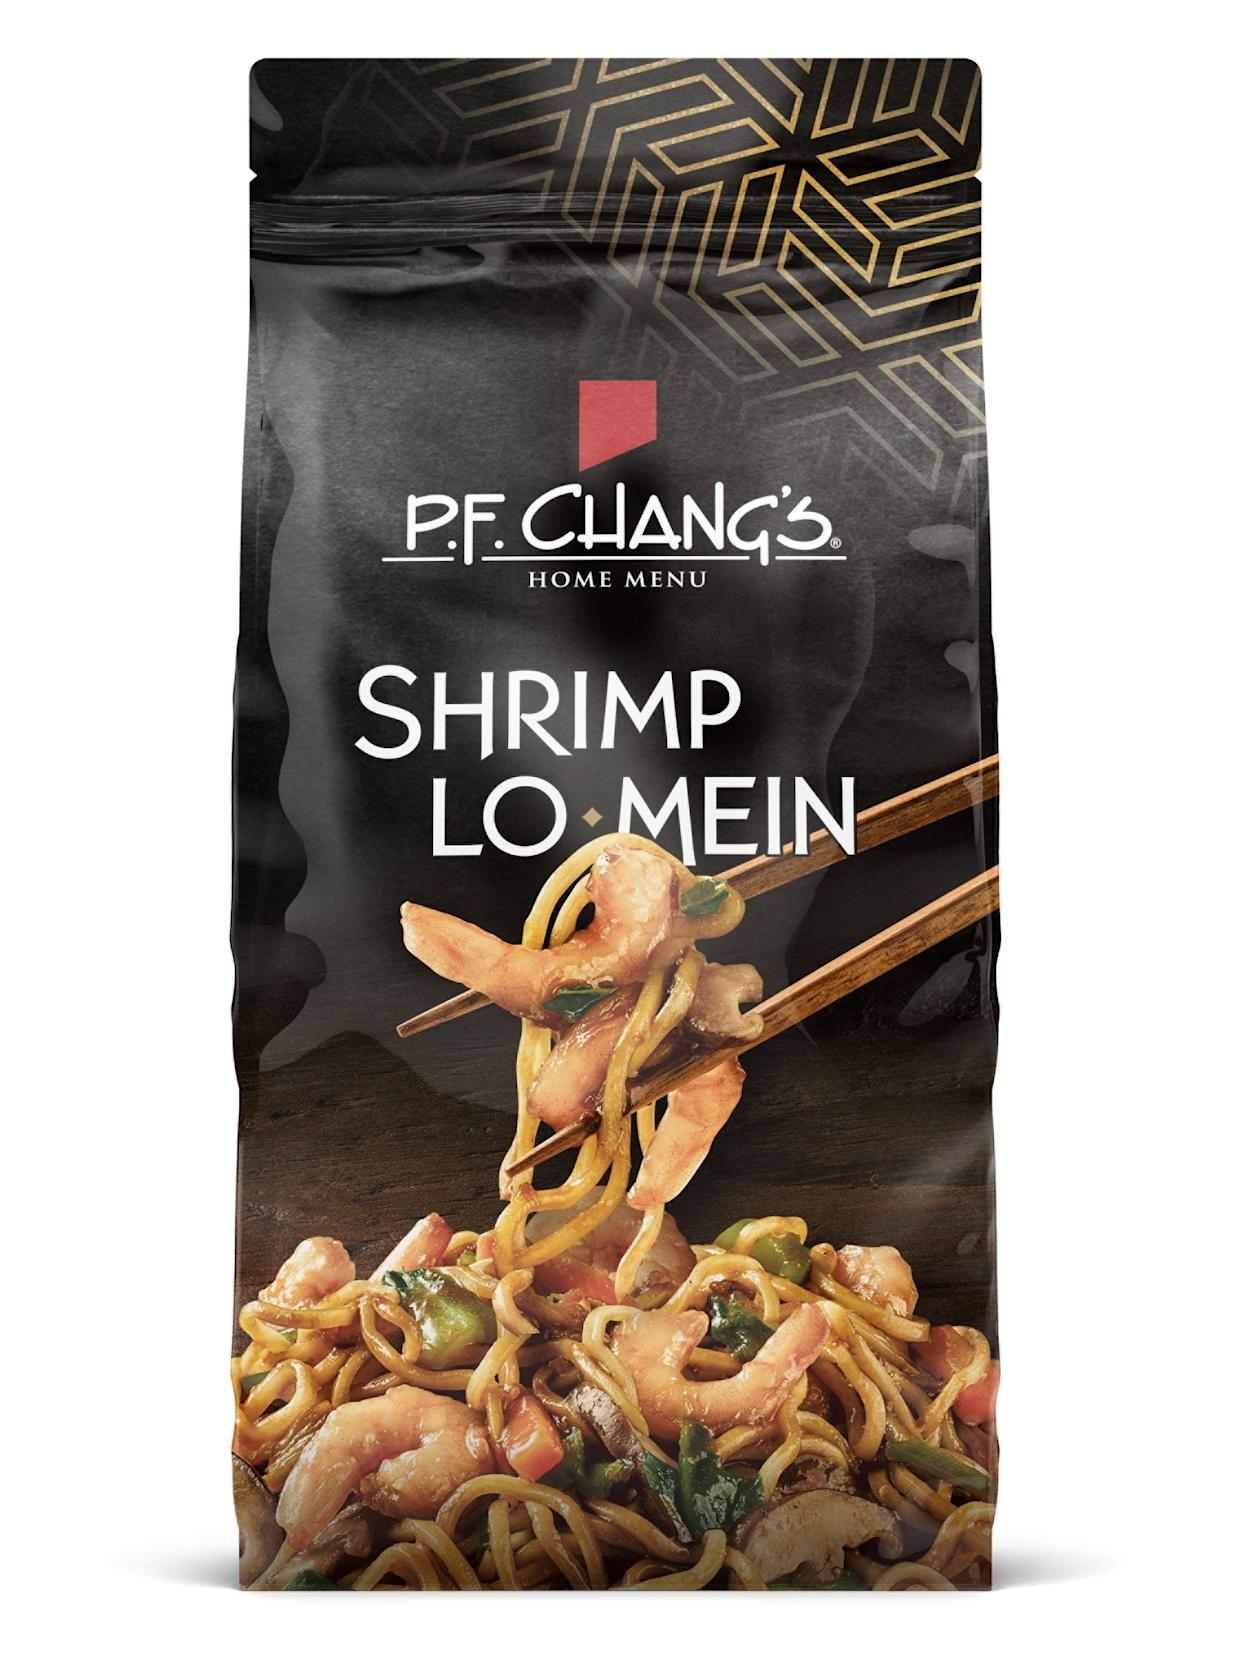 P.F. Chang's Chicken or Shrimp Lo Mein